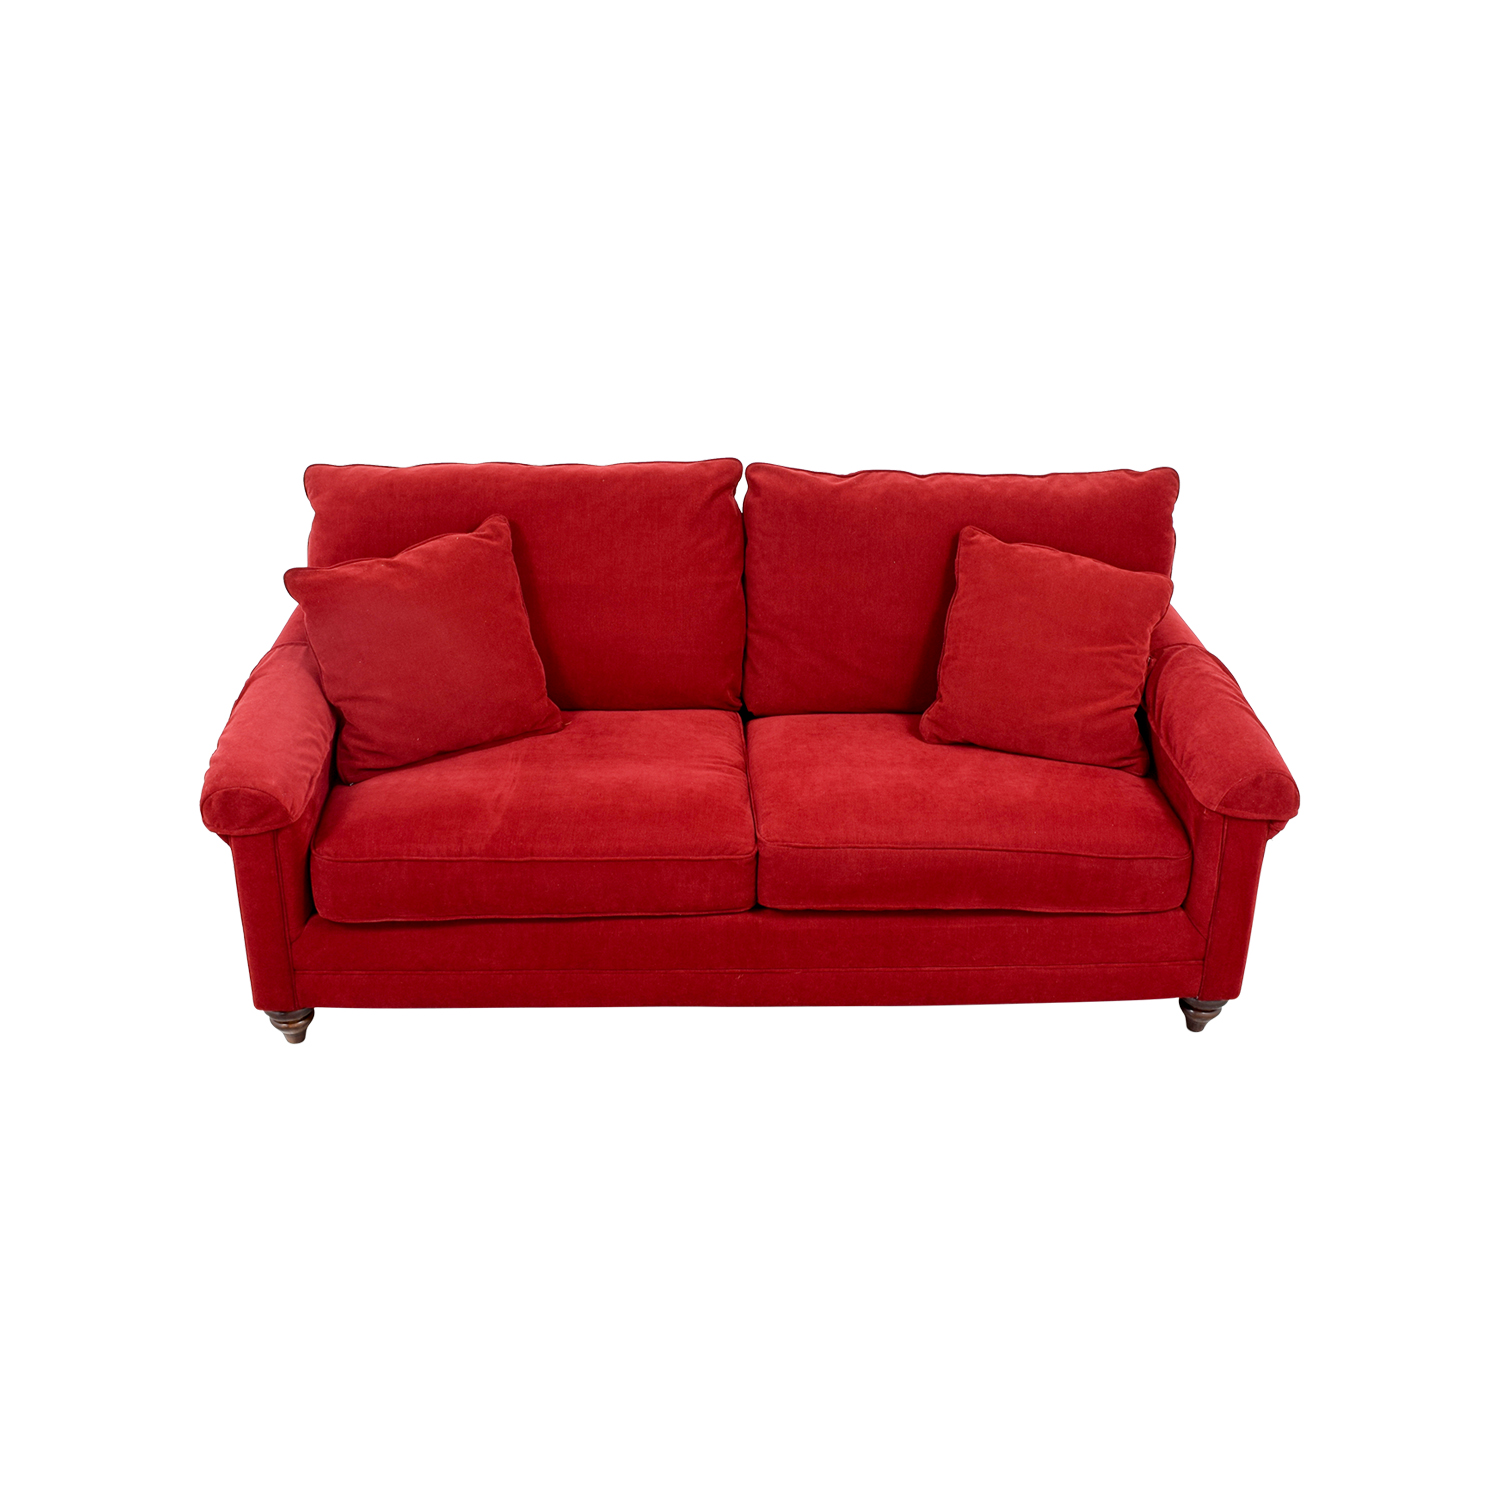 buy Bassett Red Curved Arm Two-Cushion Couch Bassett